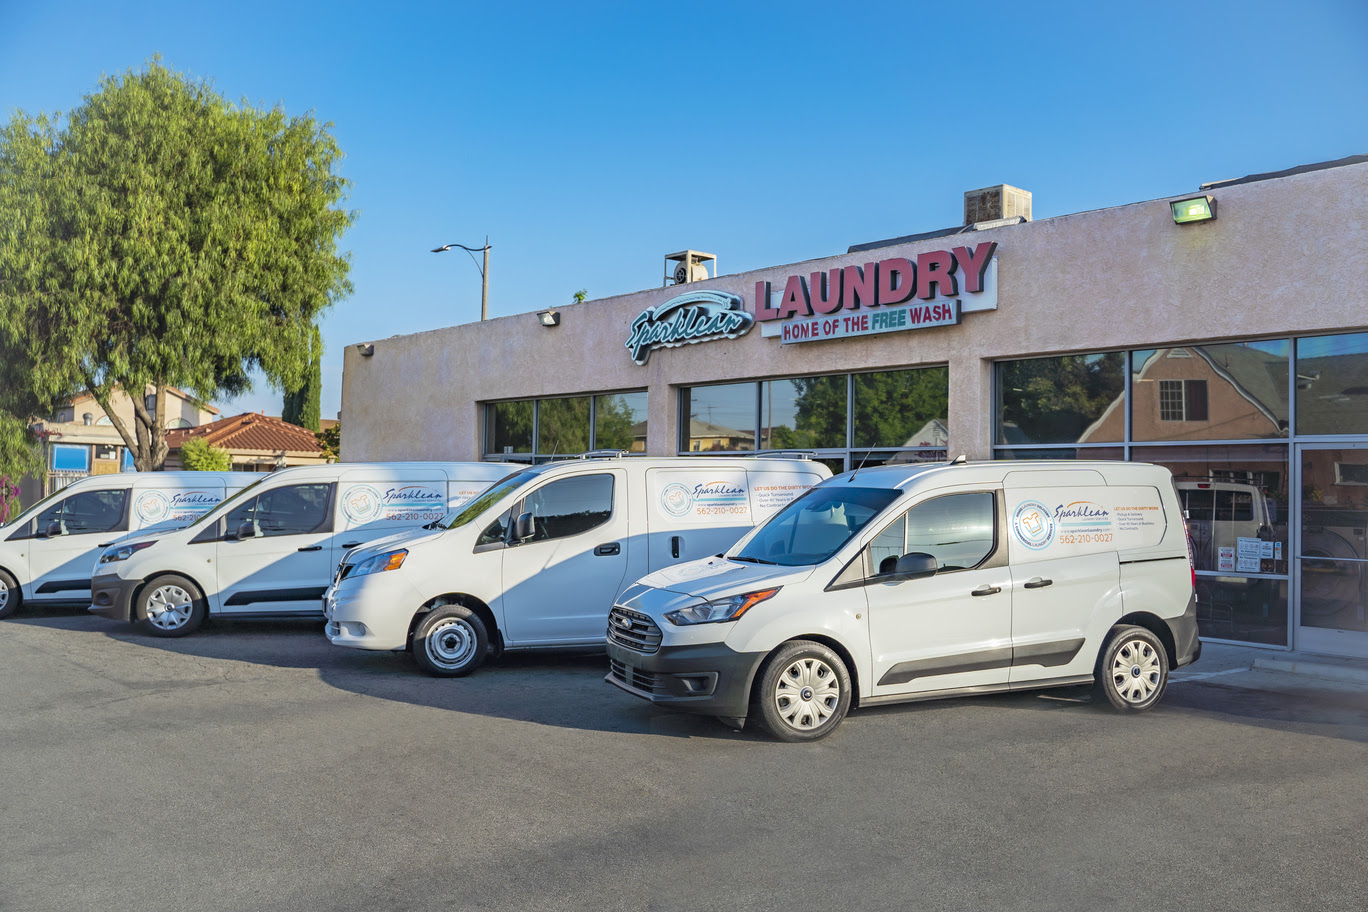 Long beach laundry delivery service